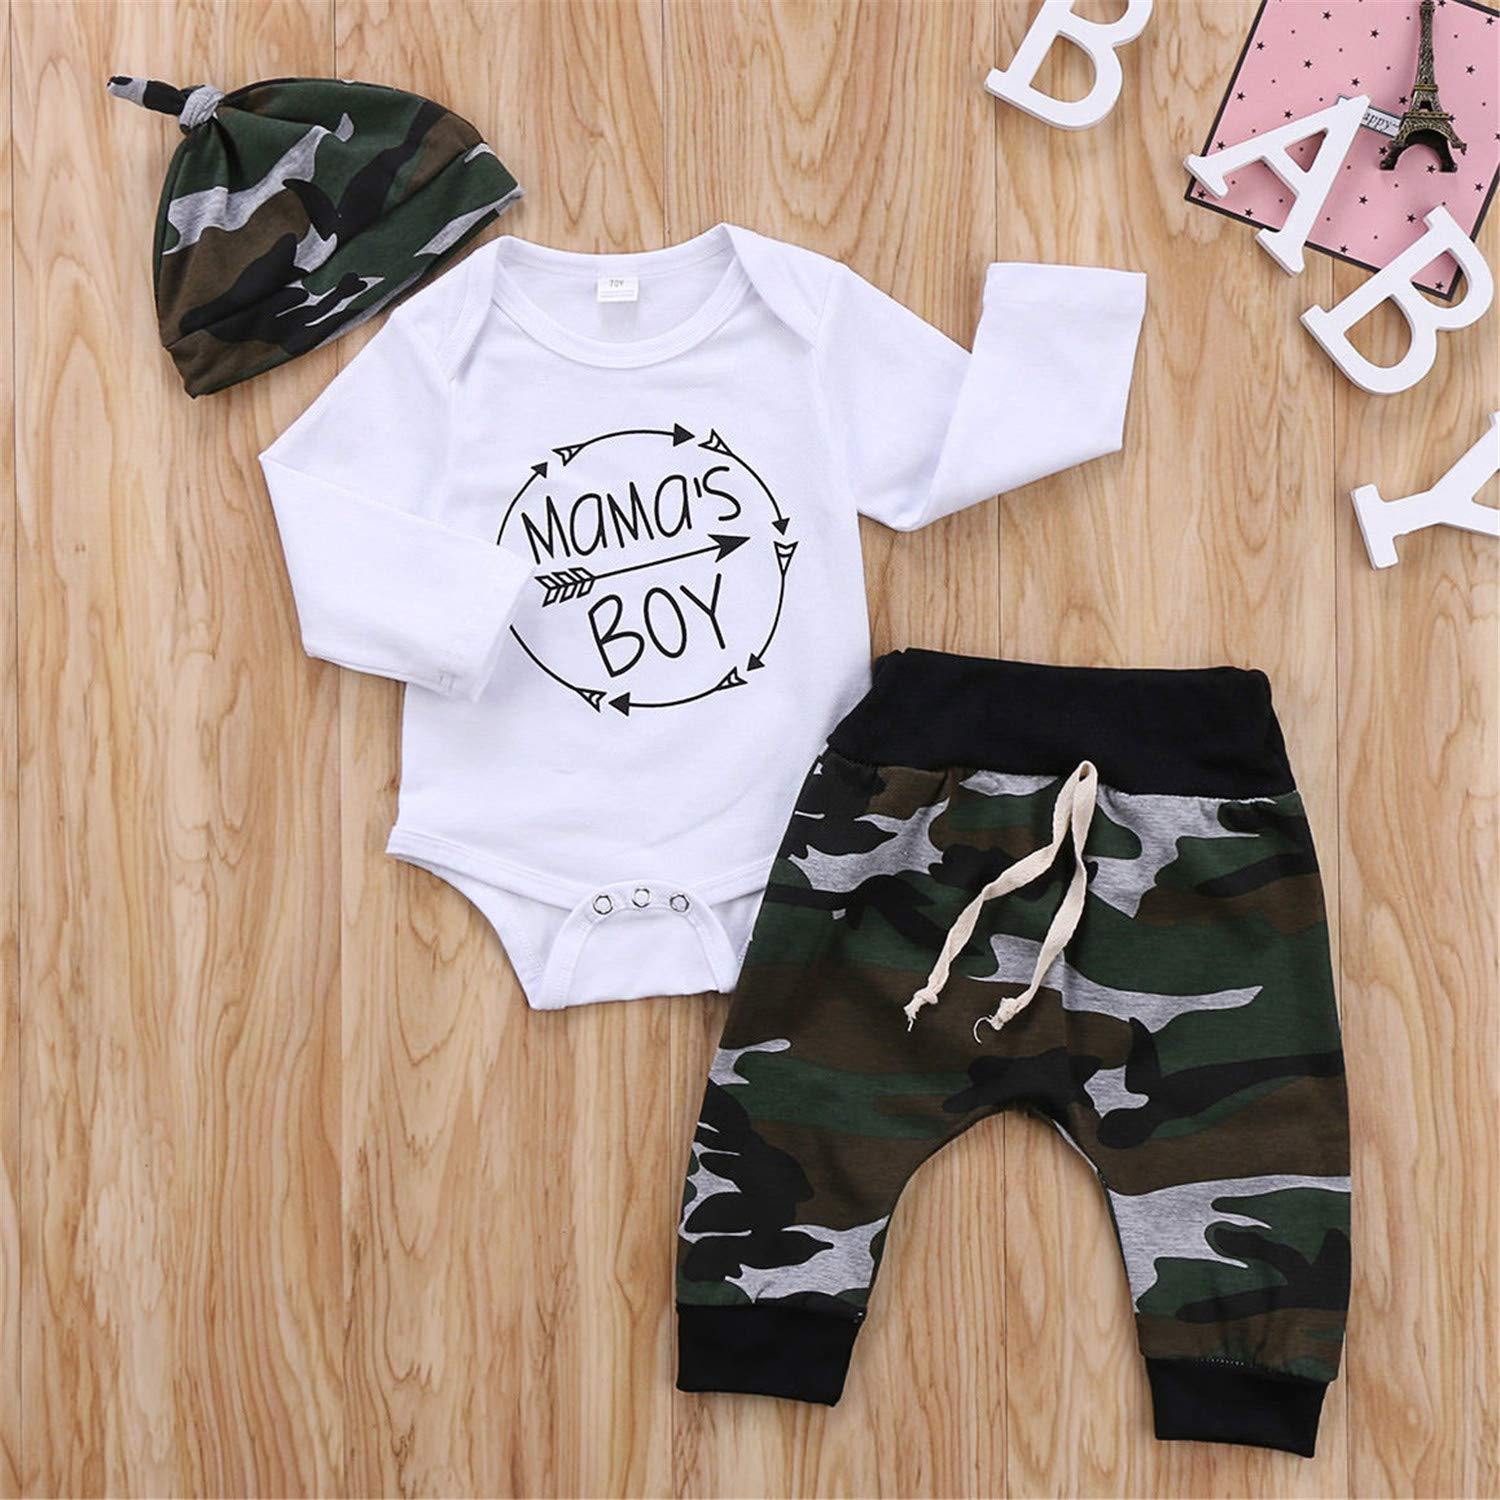 New 3Pcs Set Newborn Toddler Infant Baby Boy Long Sleeve Tops Romper Camouflage Pants Hat 3Pcs Kids Outfits Clothes